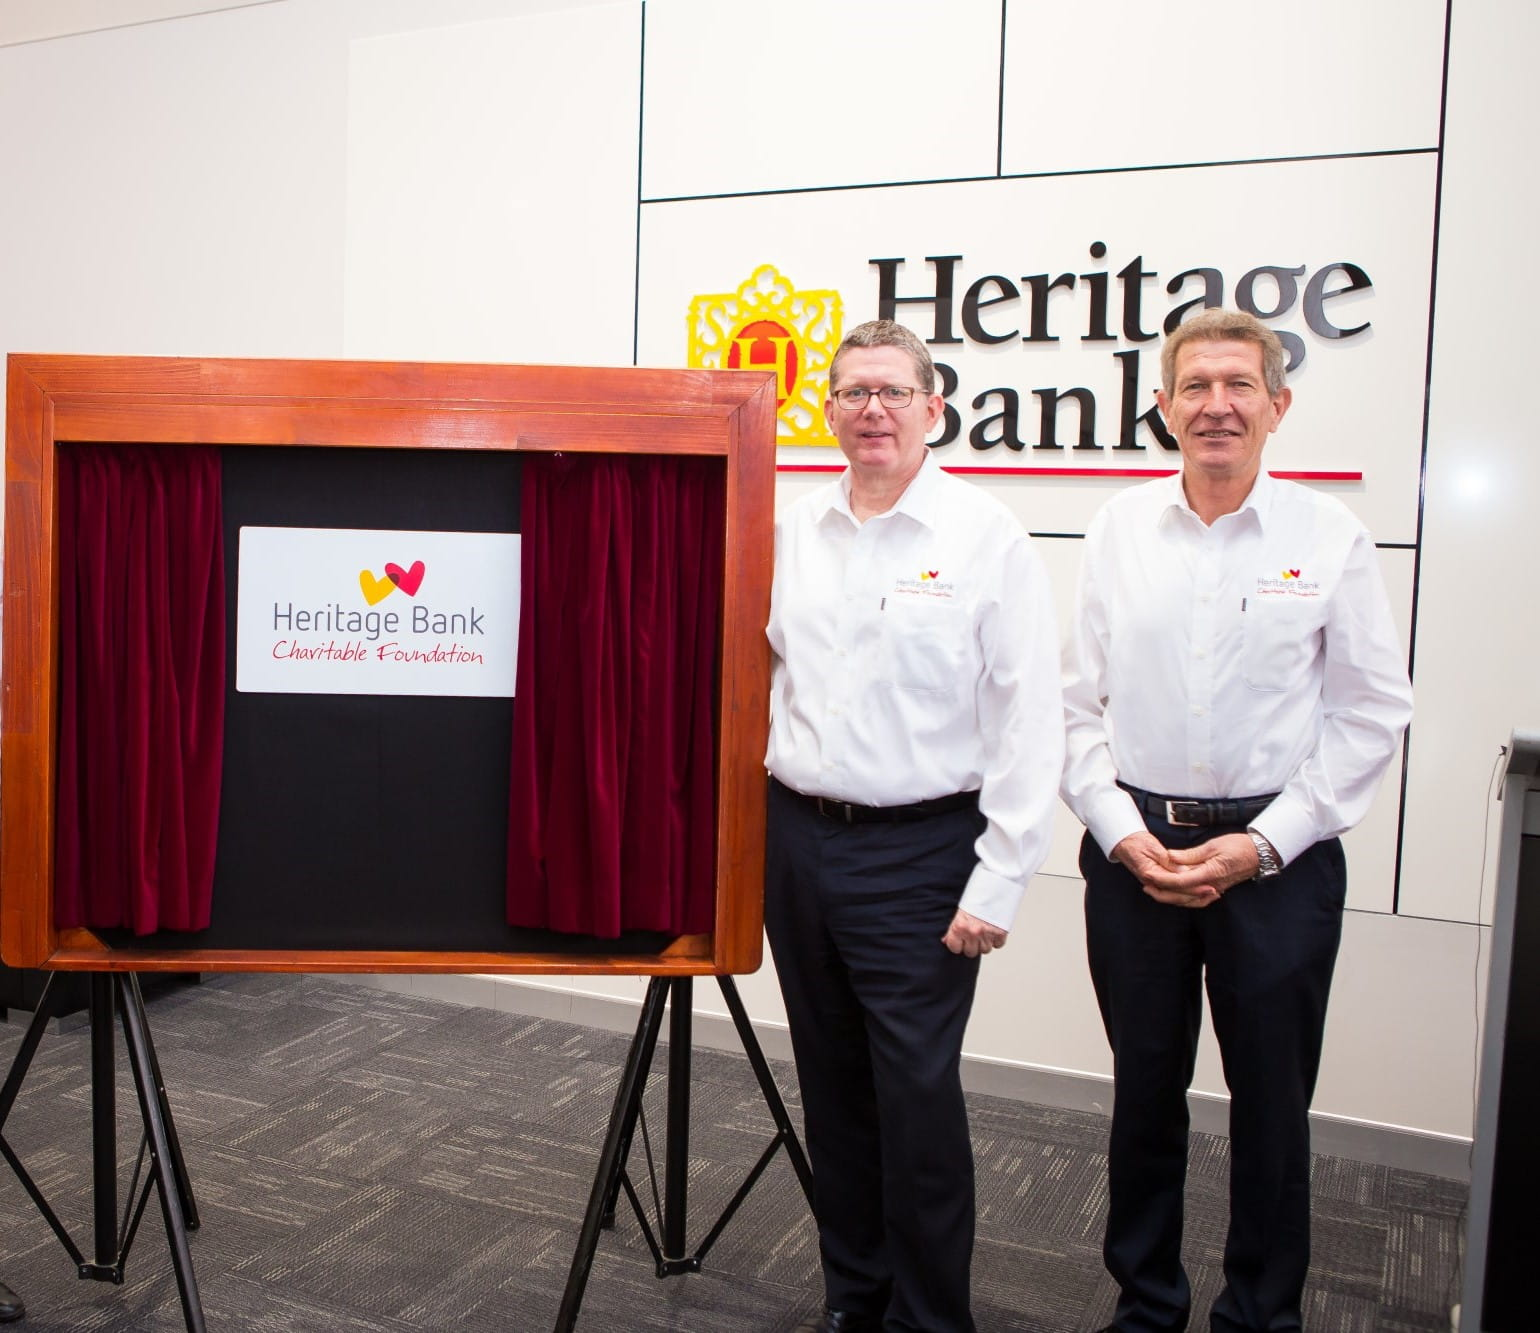 Stephen Davis - Director - Heritage Bank Charitable Foundation